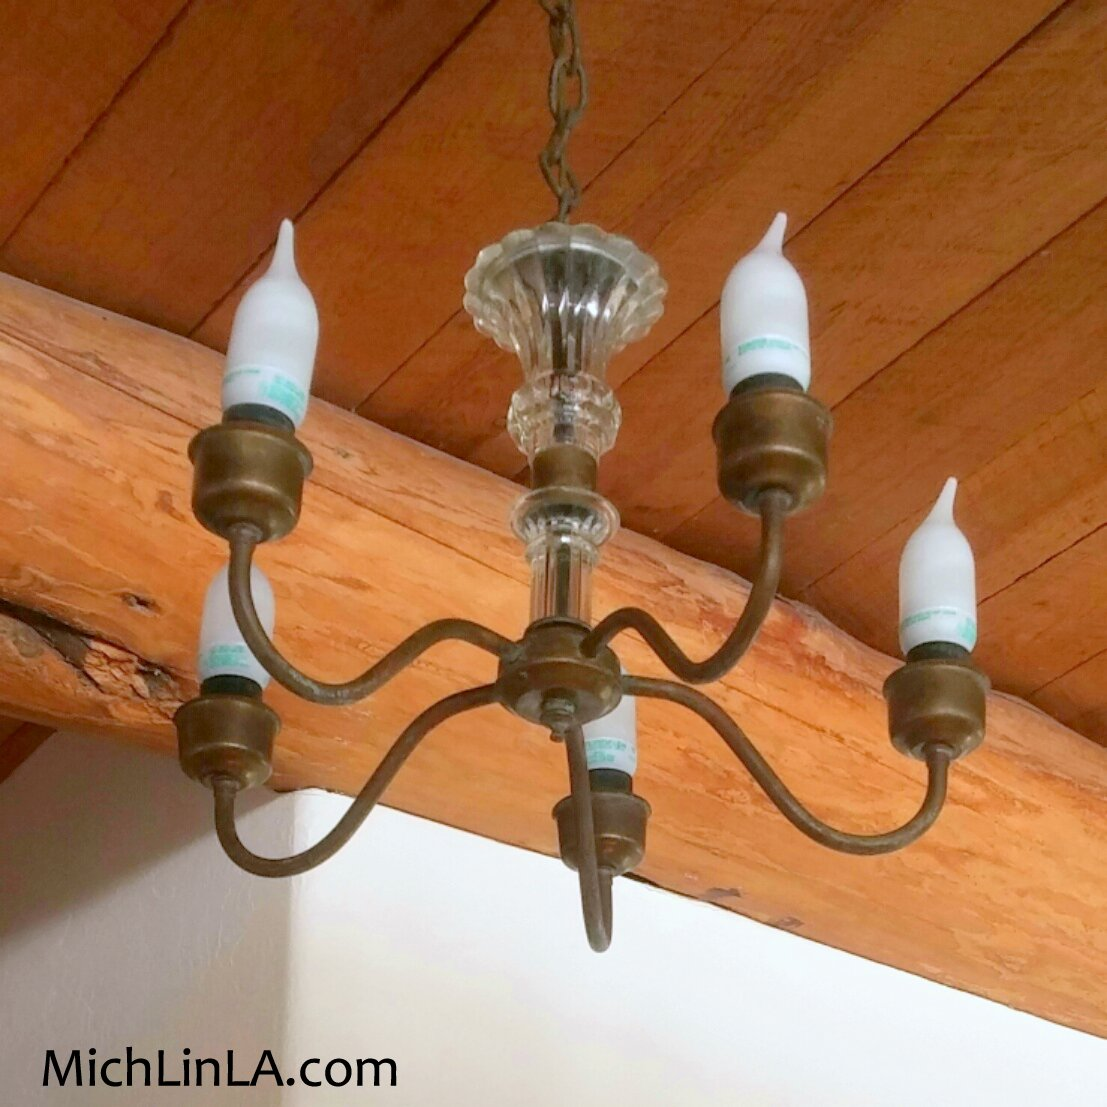 Mich l in la upcycled chandelier ruffles from starbucks cups so instead of buying mini shades i tried a very mich upcycle arubaitofo Choice Image